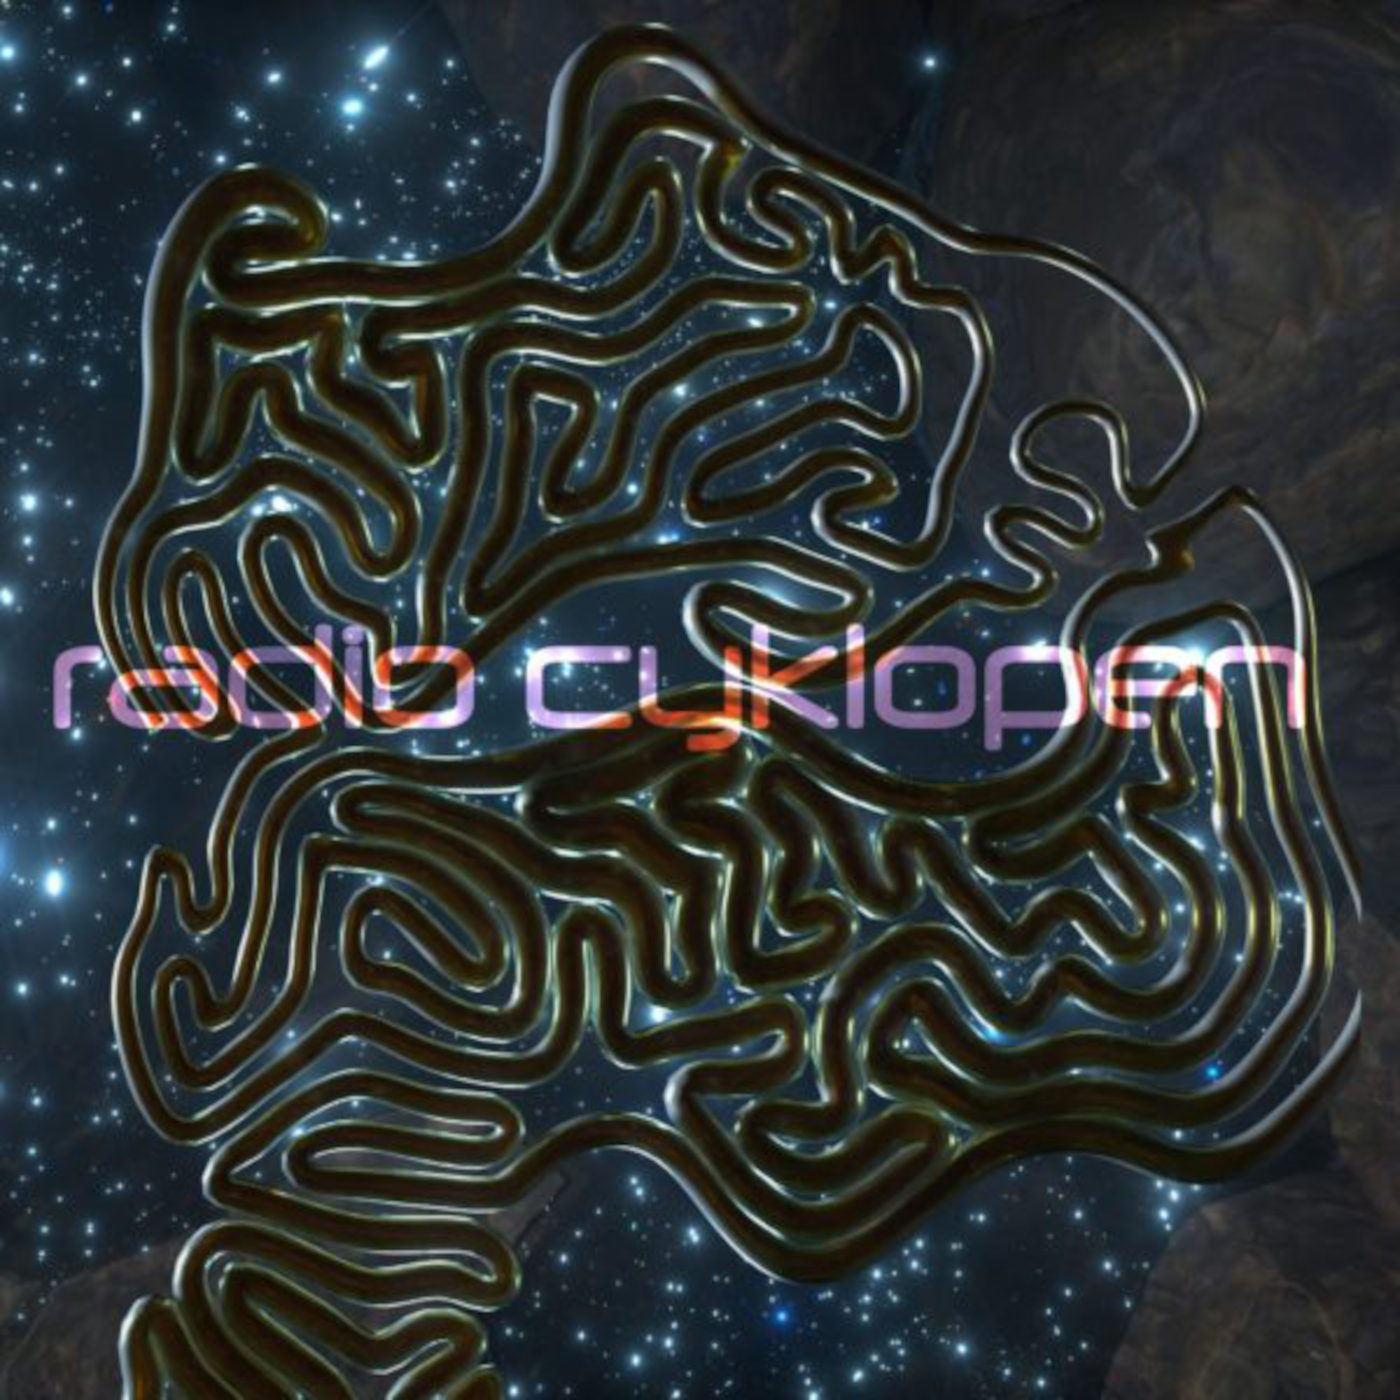 Radio Cyklopen #20: Space is the place